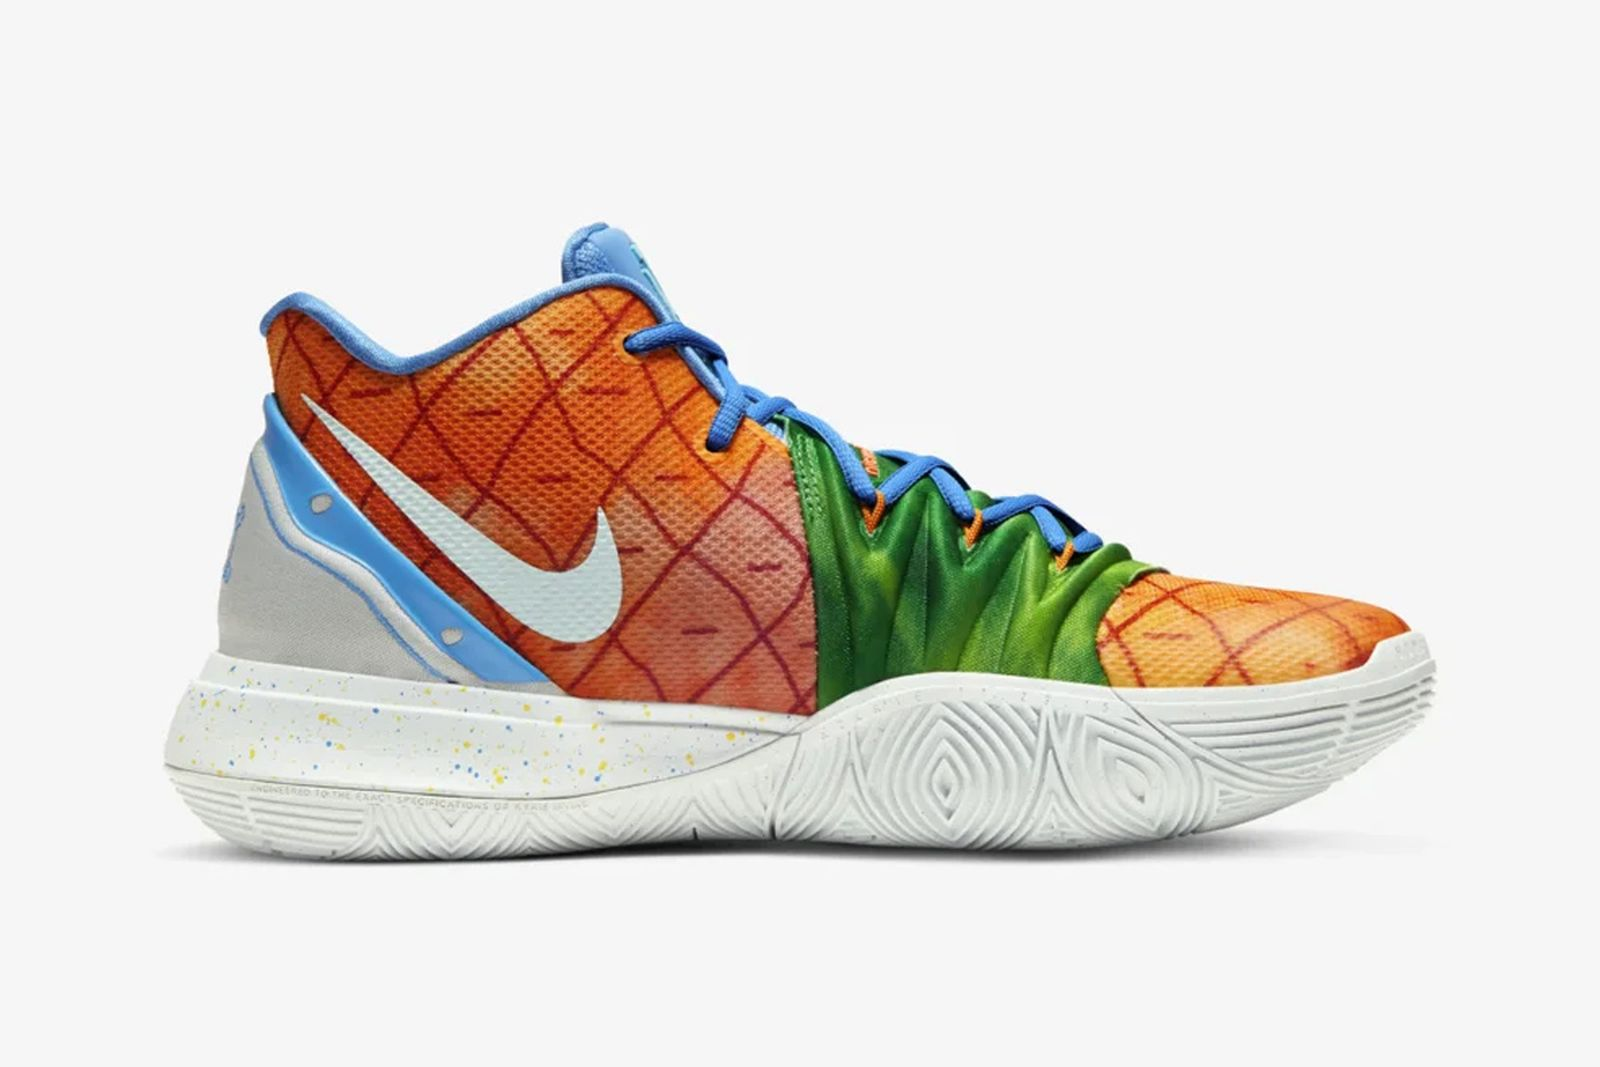 Nike Kyrie 5 Pineapple House: Where to Buy Today